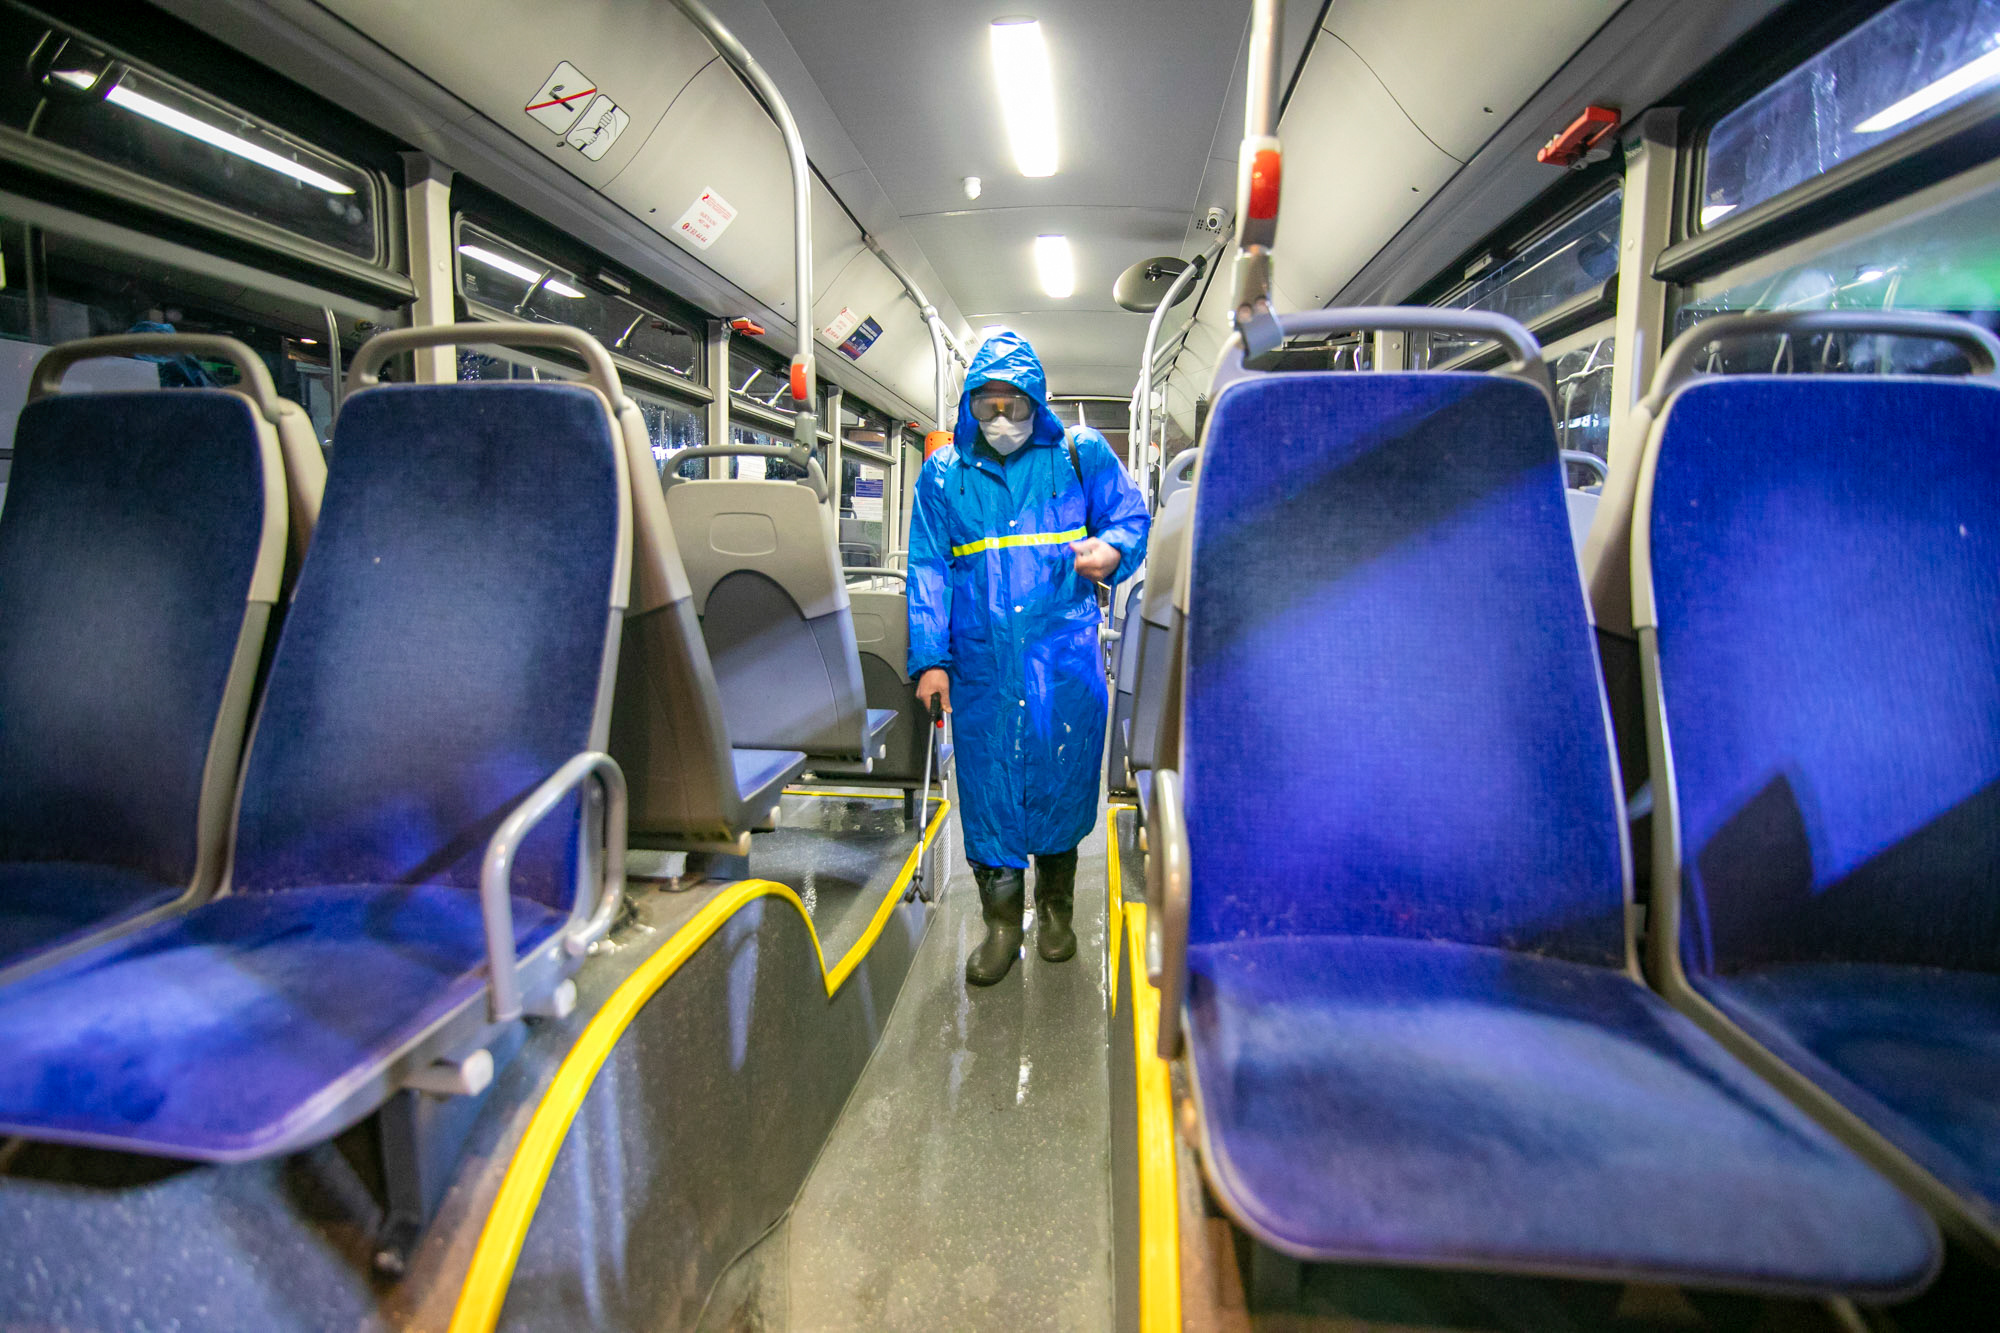 A bus is disinfected in Tbilisi, Georgia, on March 1.